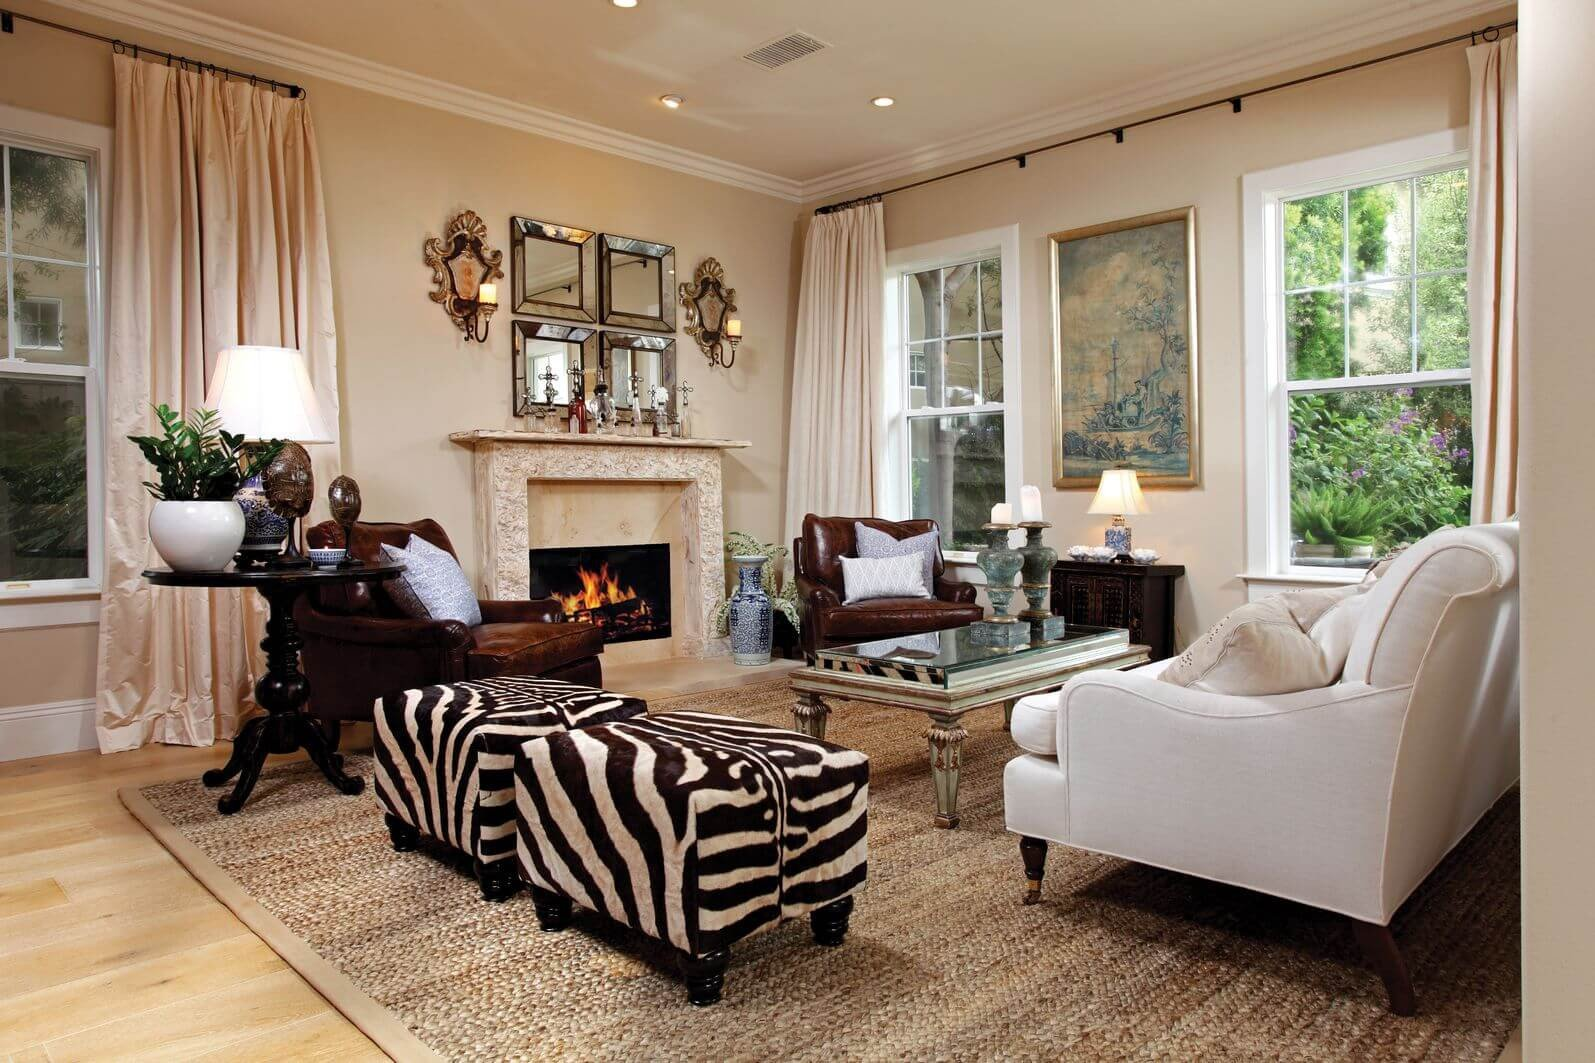 Zebra Decor for Living Room 17 Zebra Living Room Decor Ideas